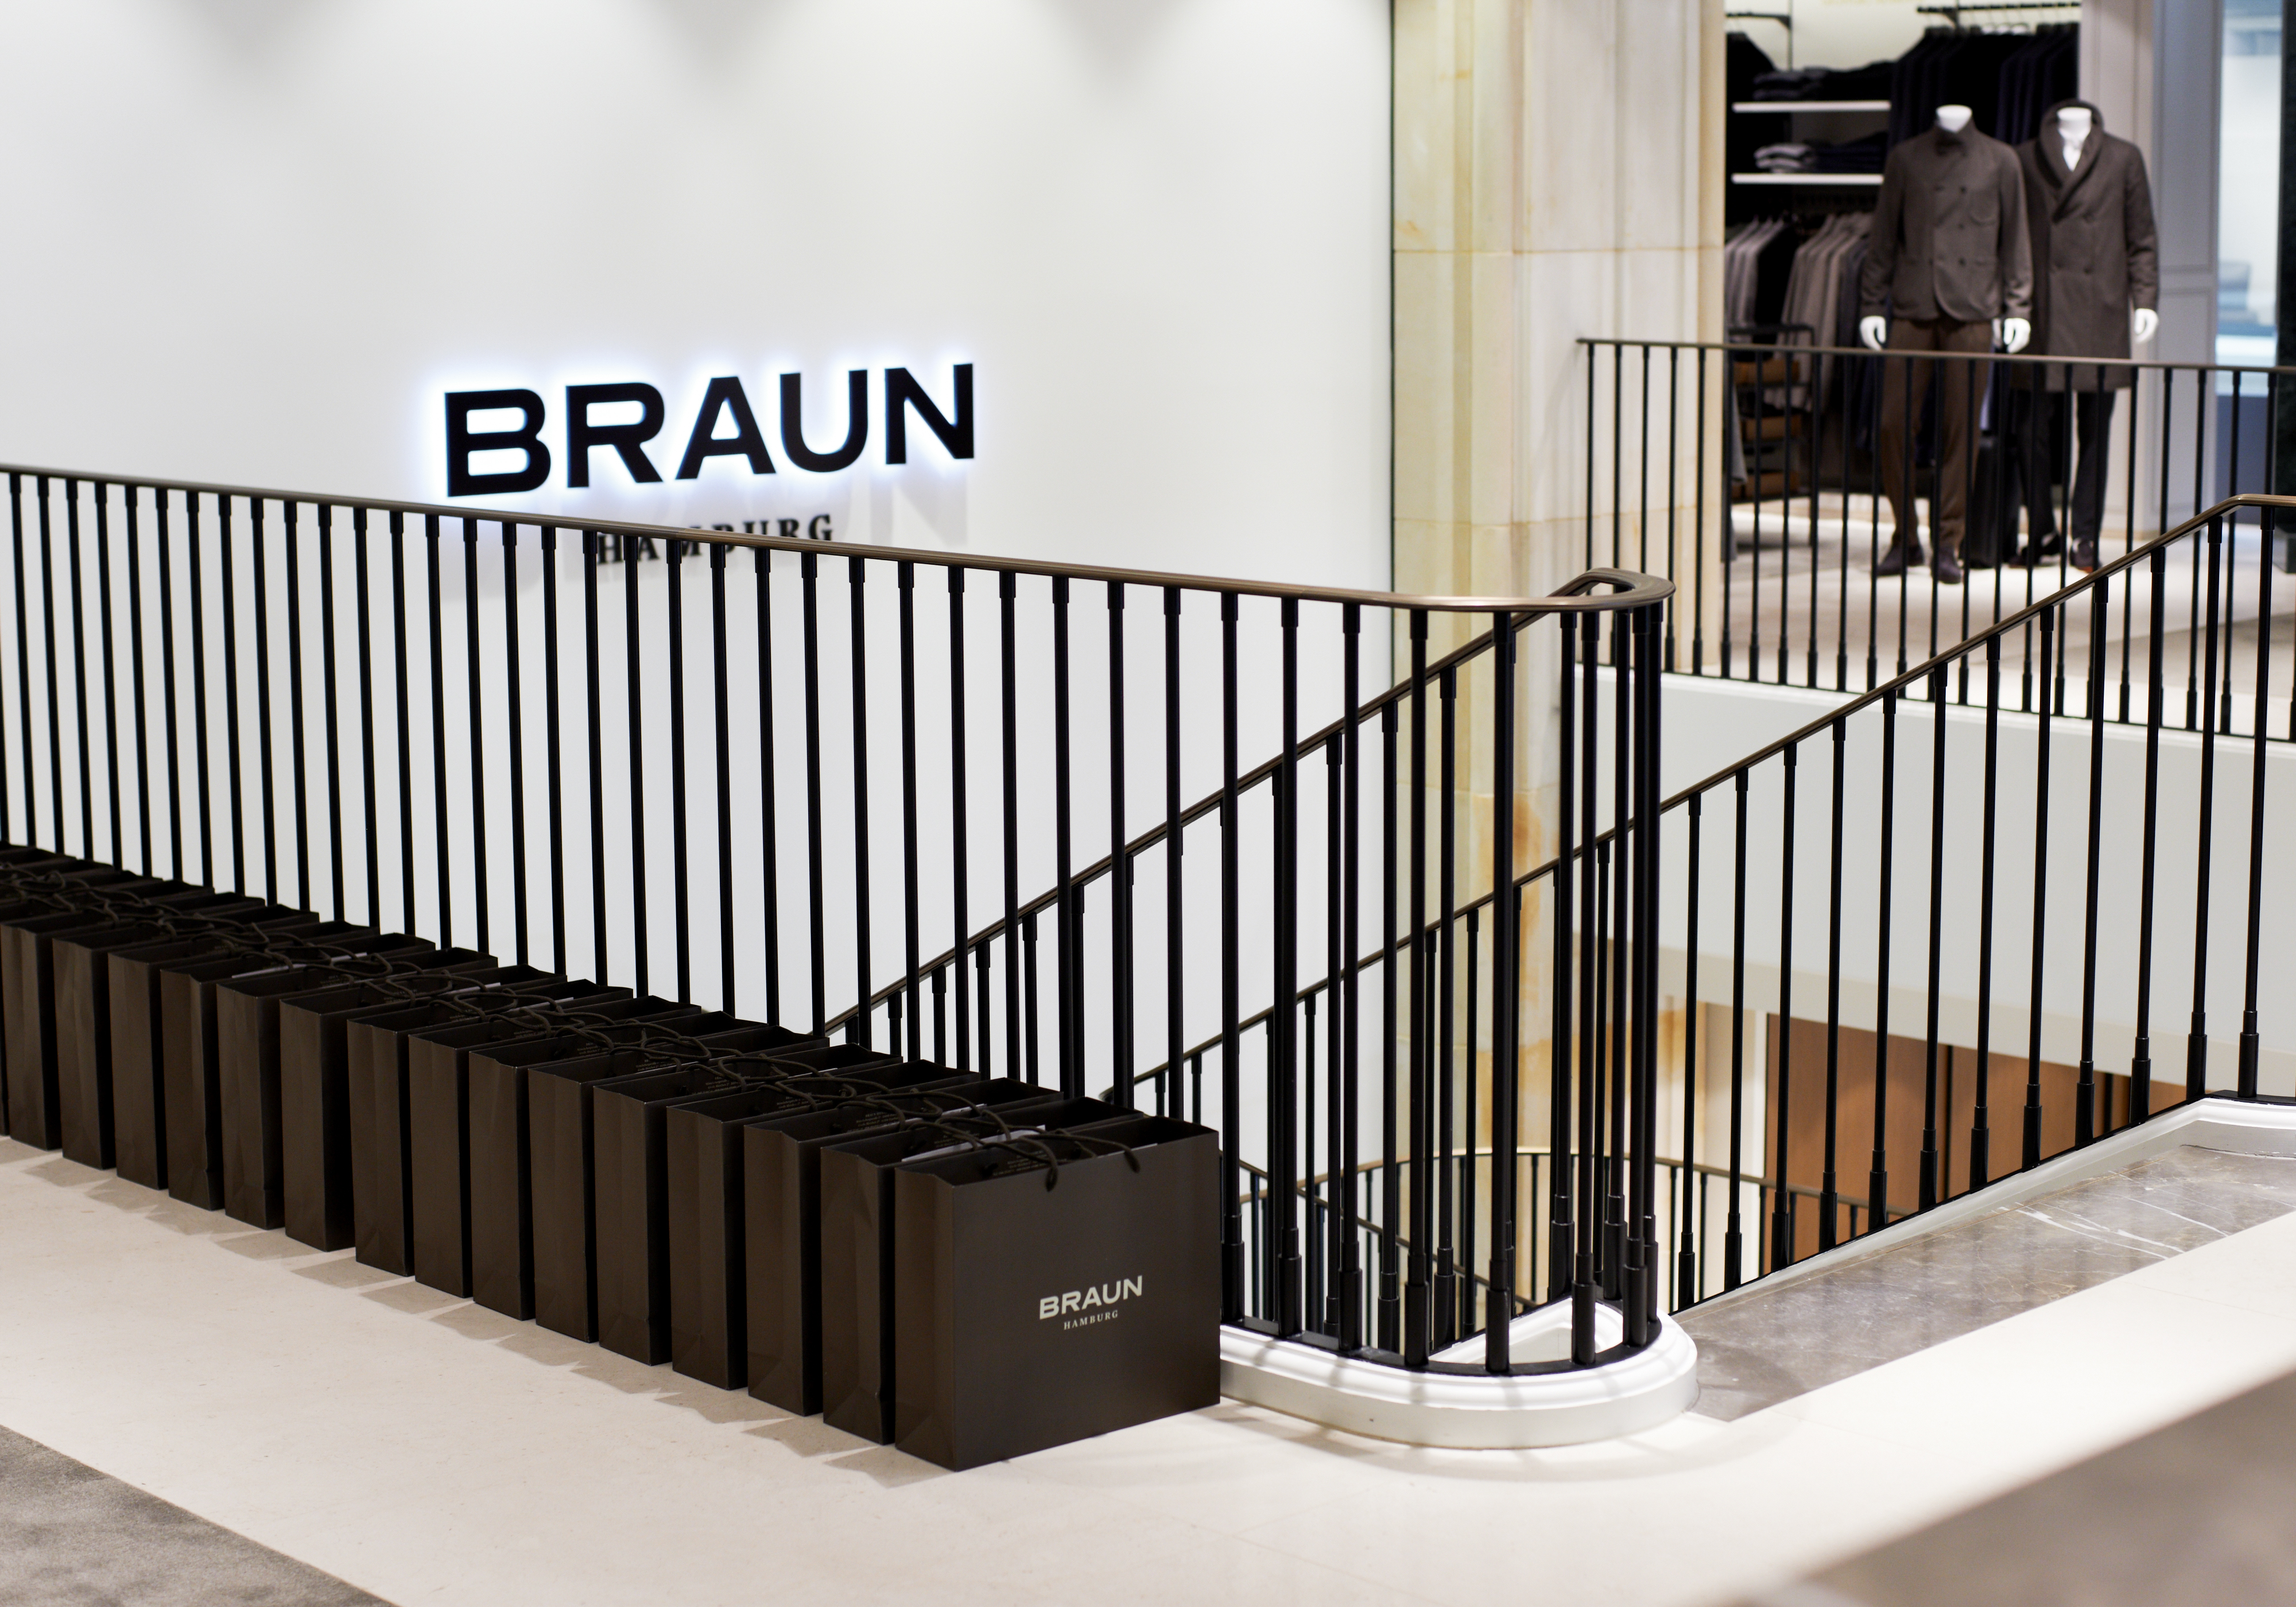 braun-hamburg-fashion-store-